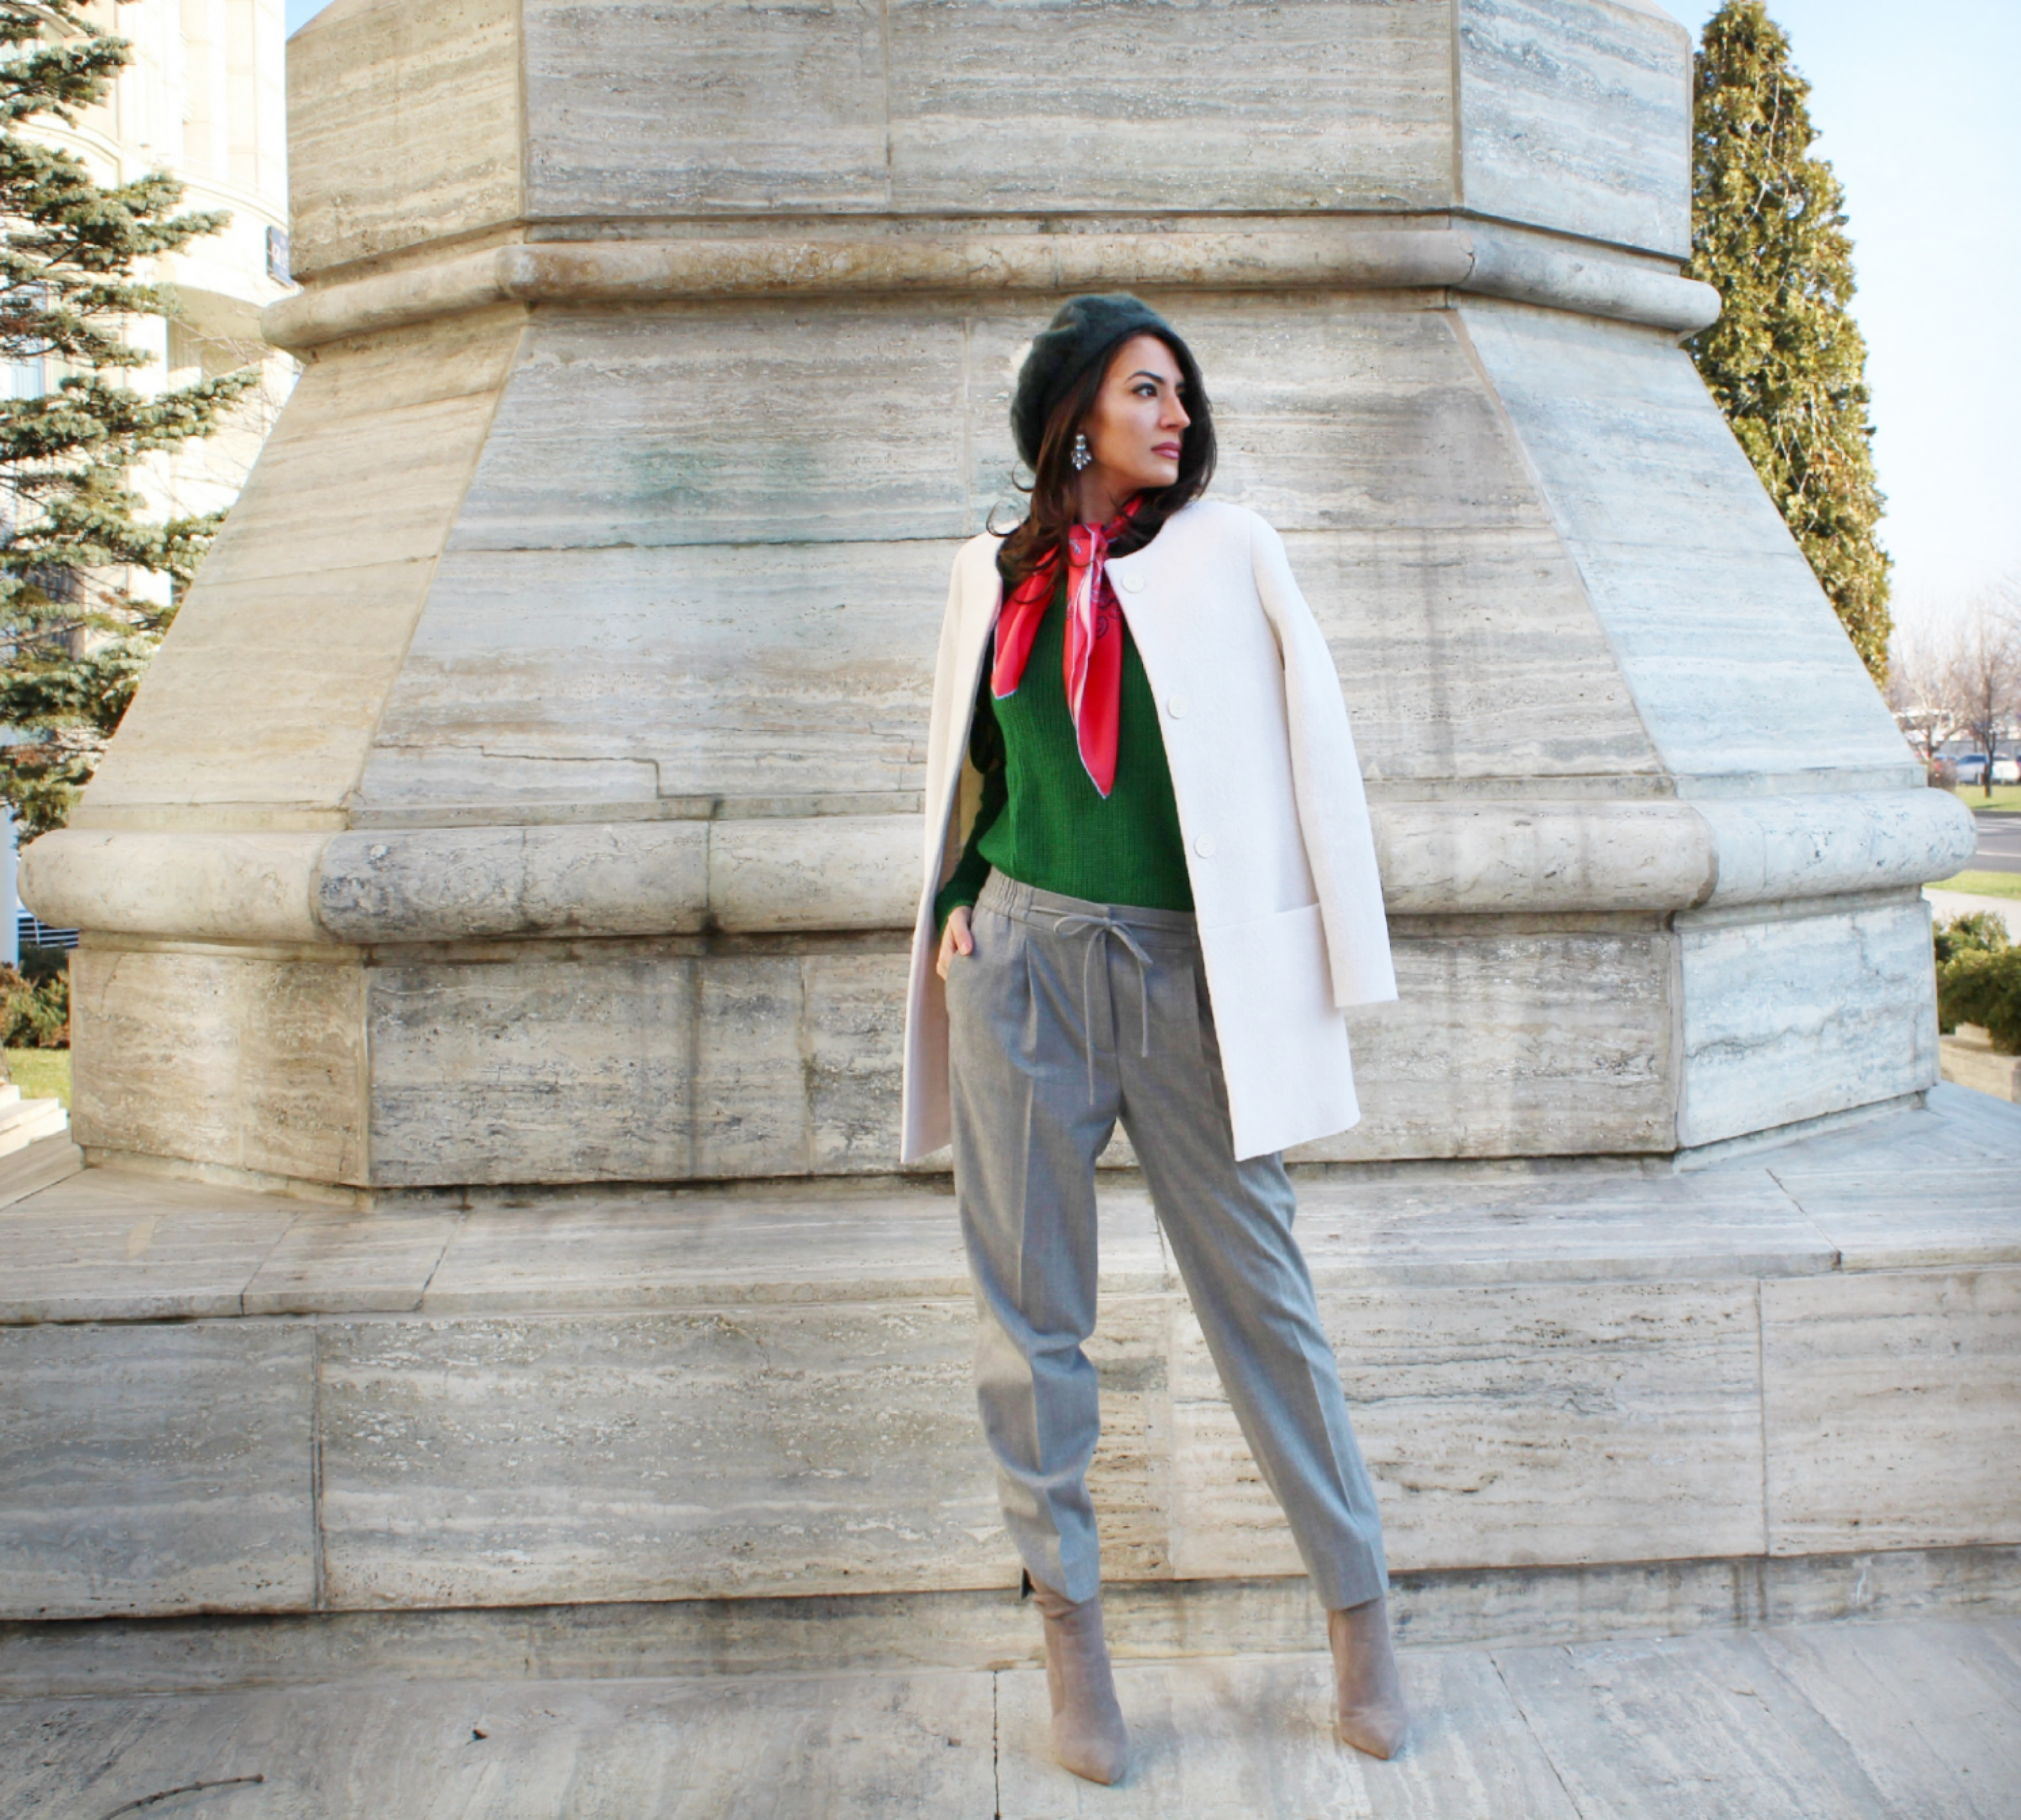 mihaela gurau green sweater rosegal ootd outfit post fashion blogger